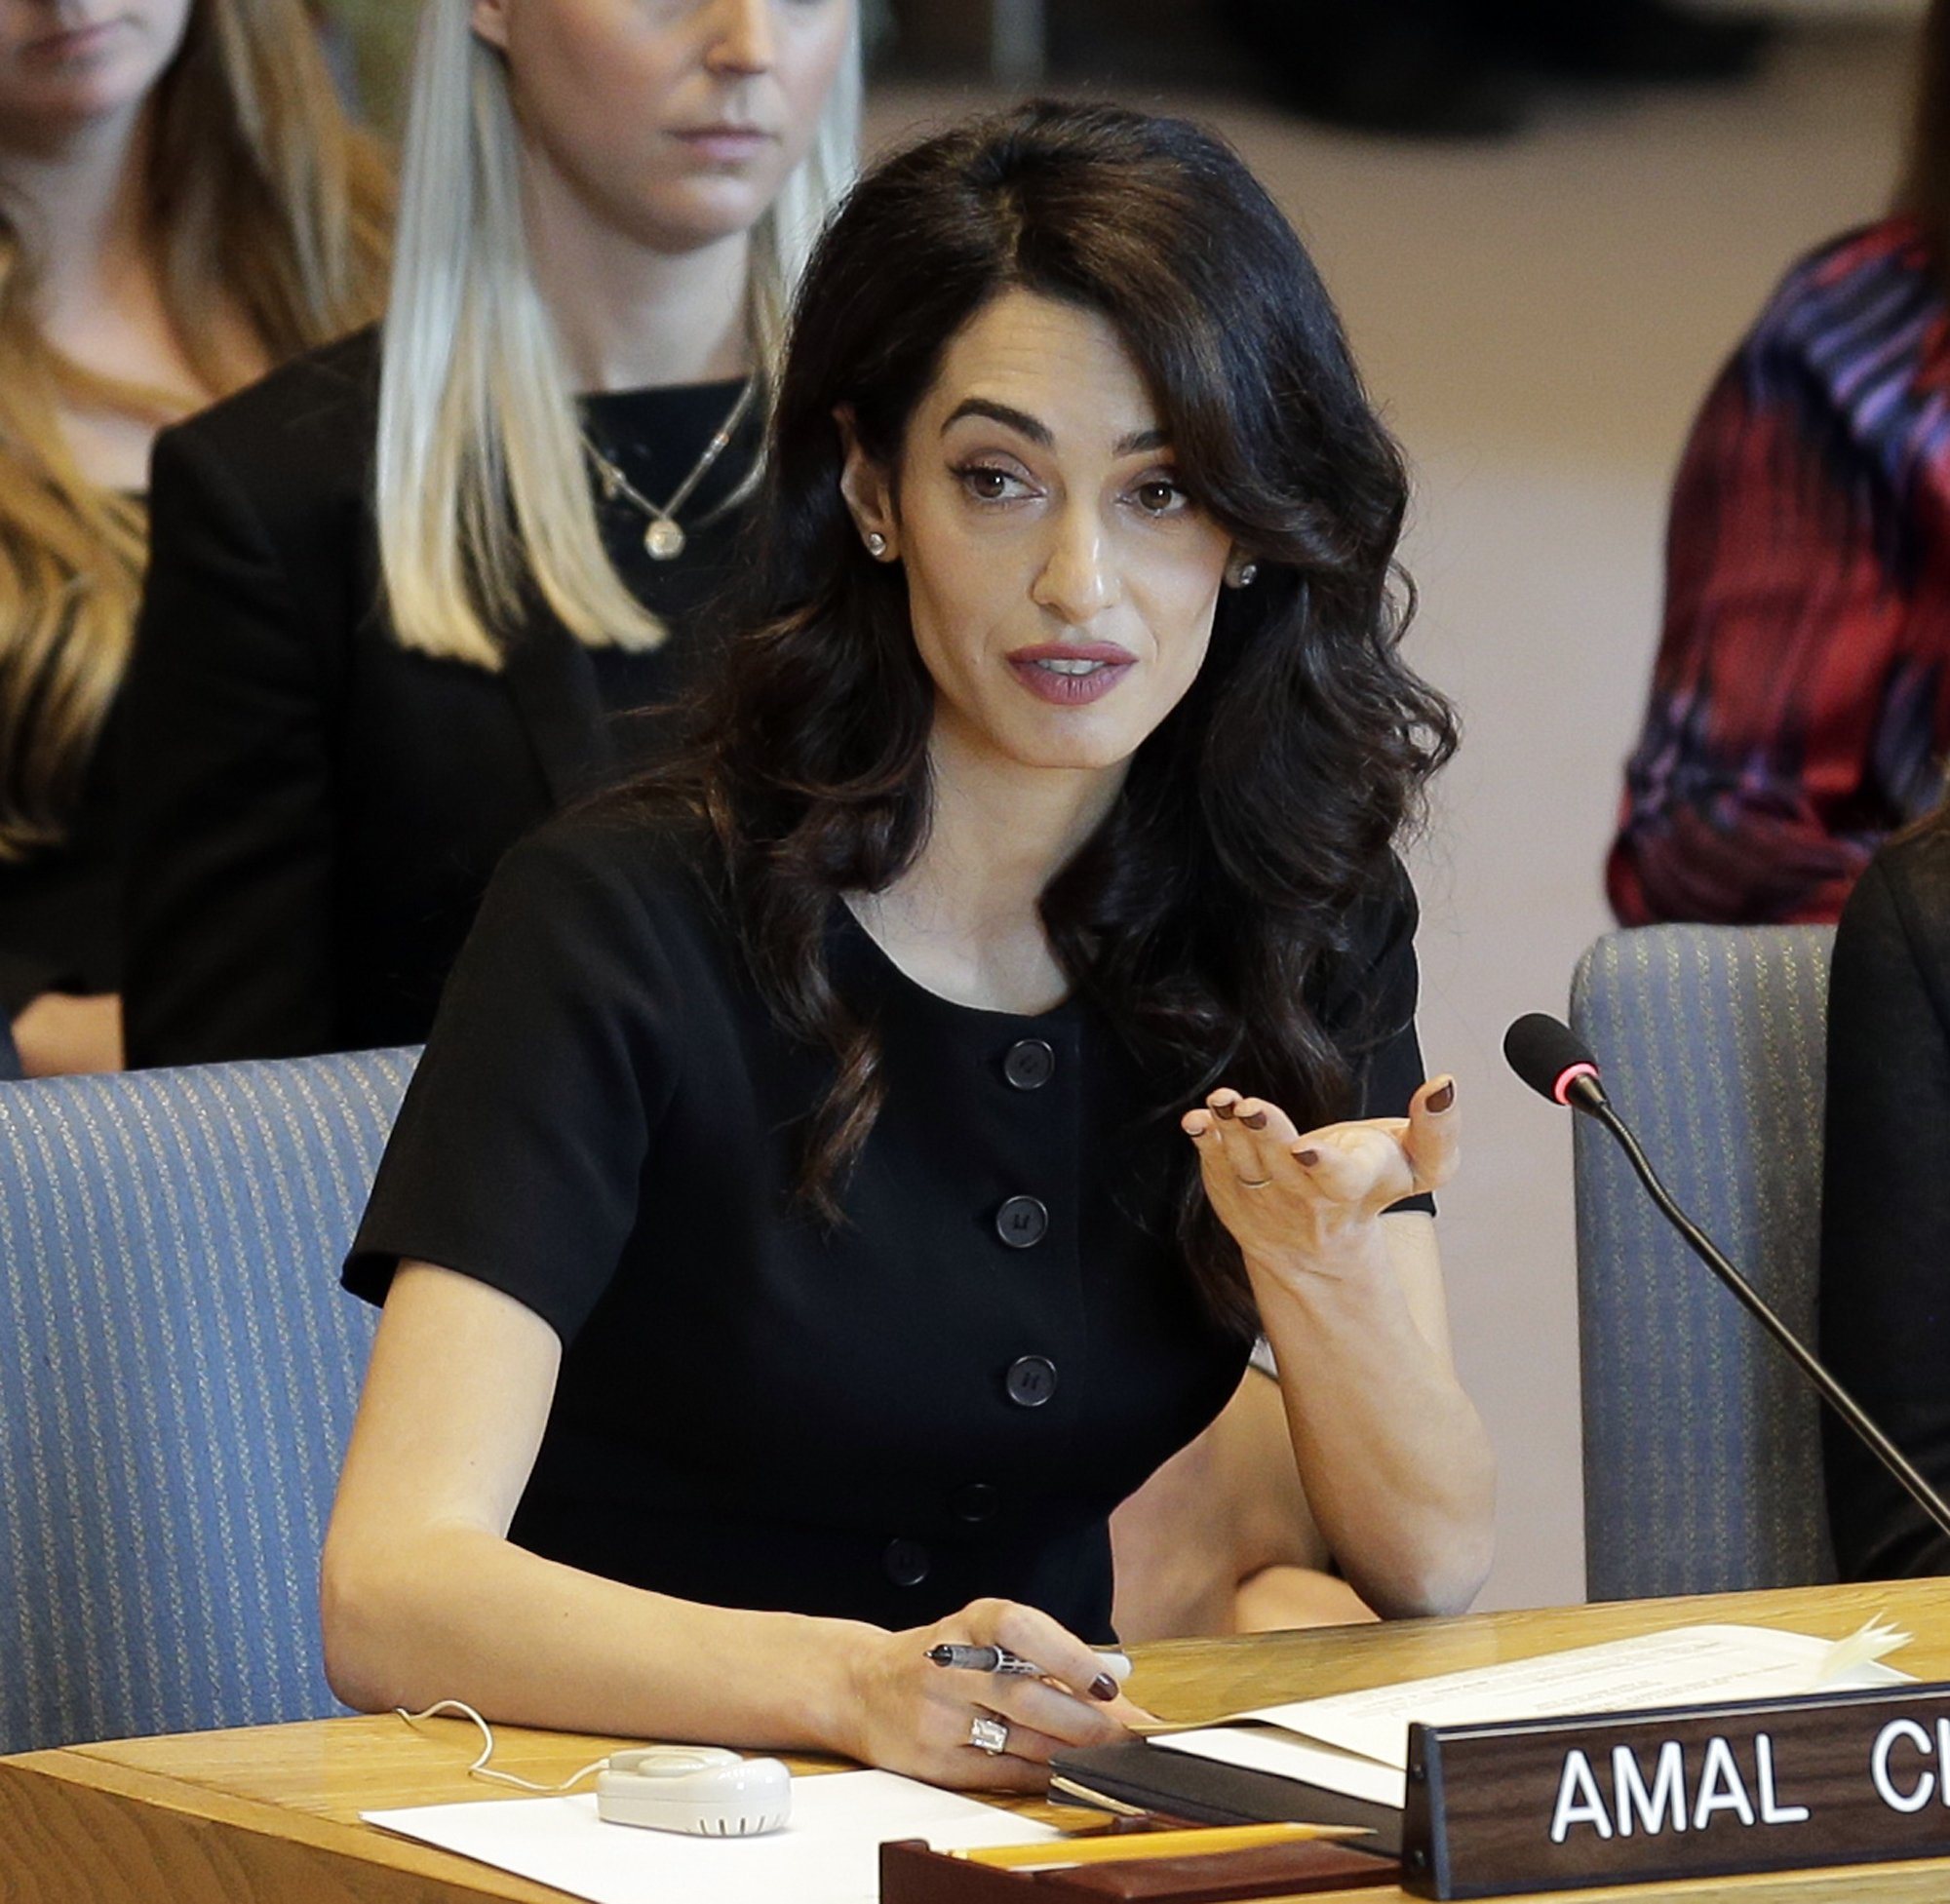 Amal Clooney seeking Islamic State woman for Yazidi crimes